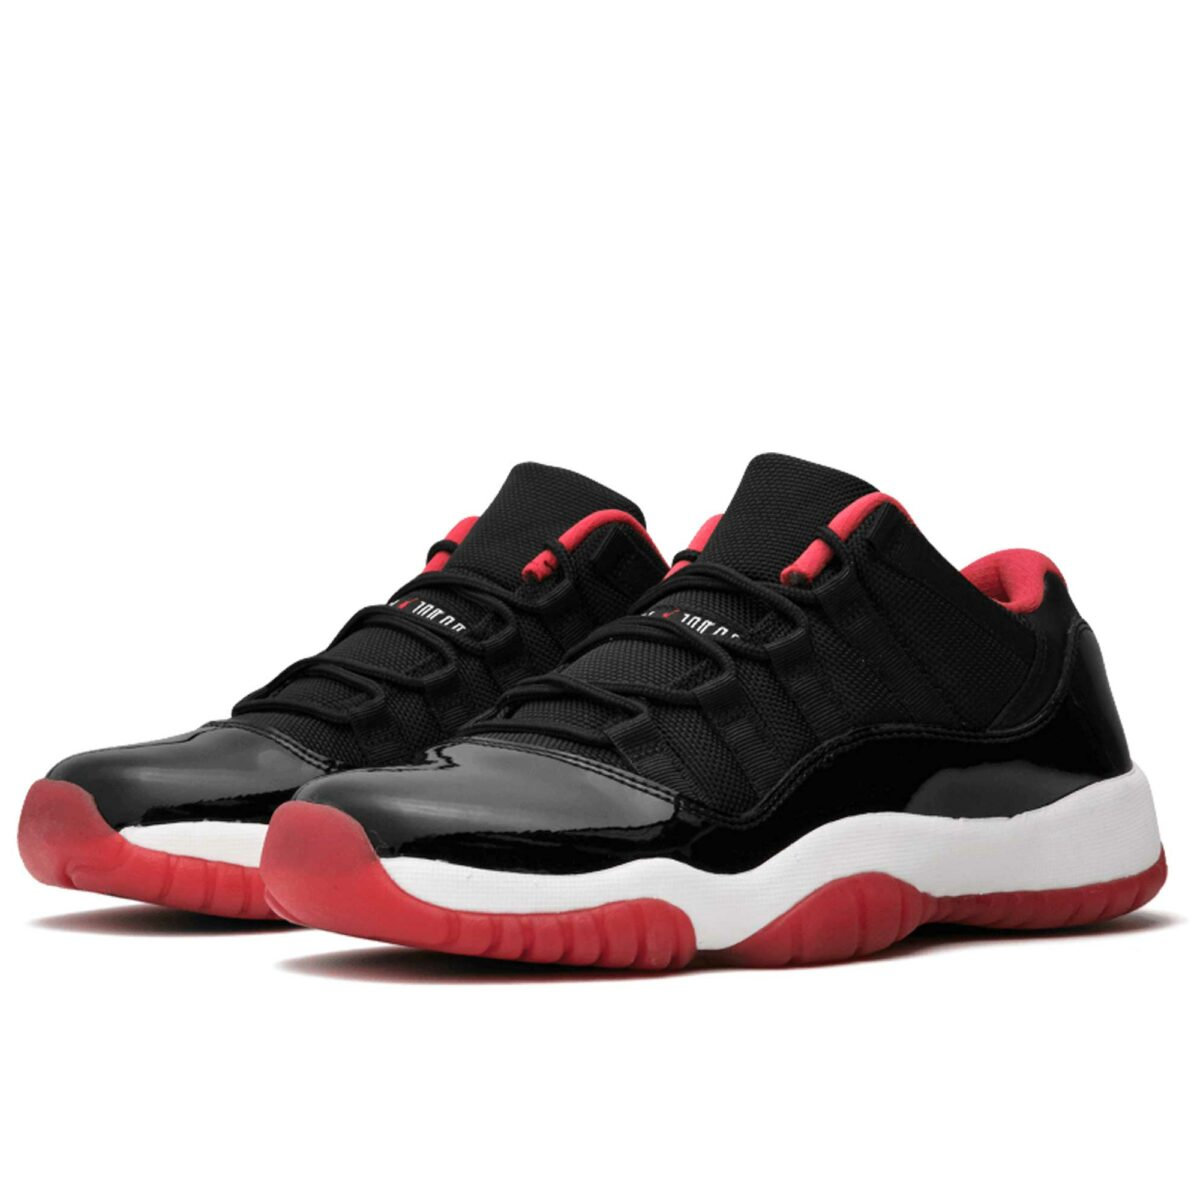 nike air Jordan 11 retro low bg black red 528896_012 купить